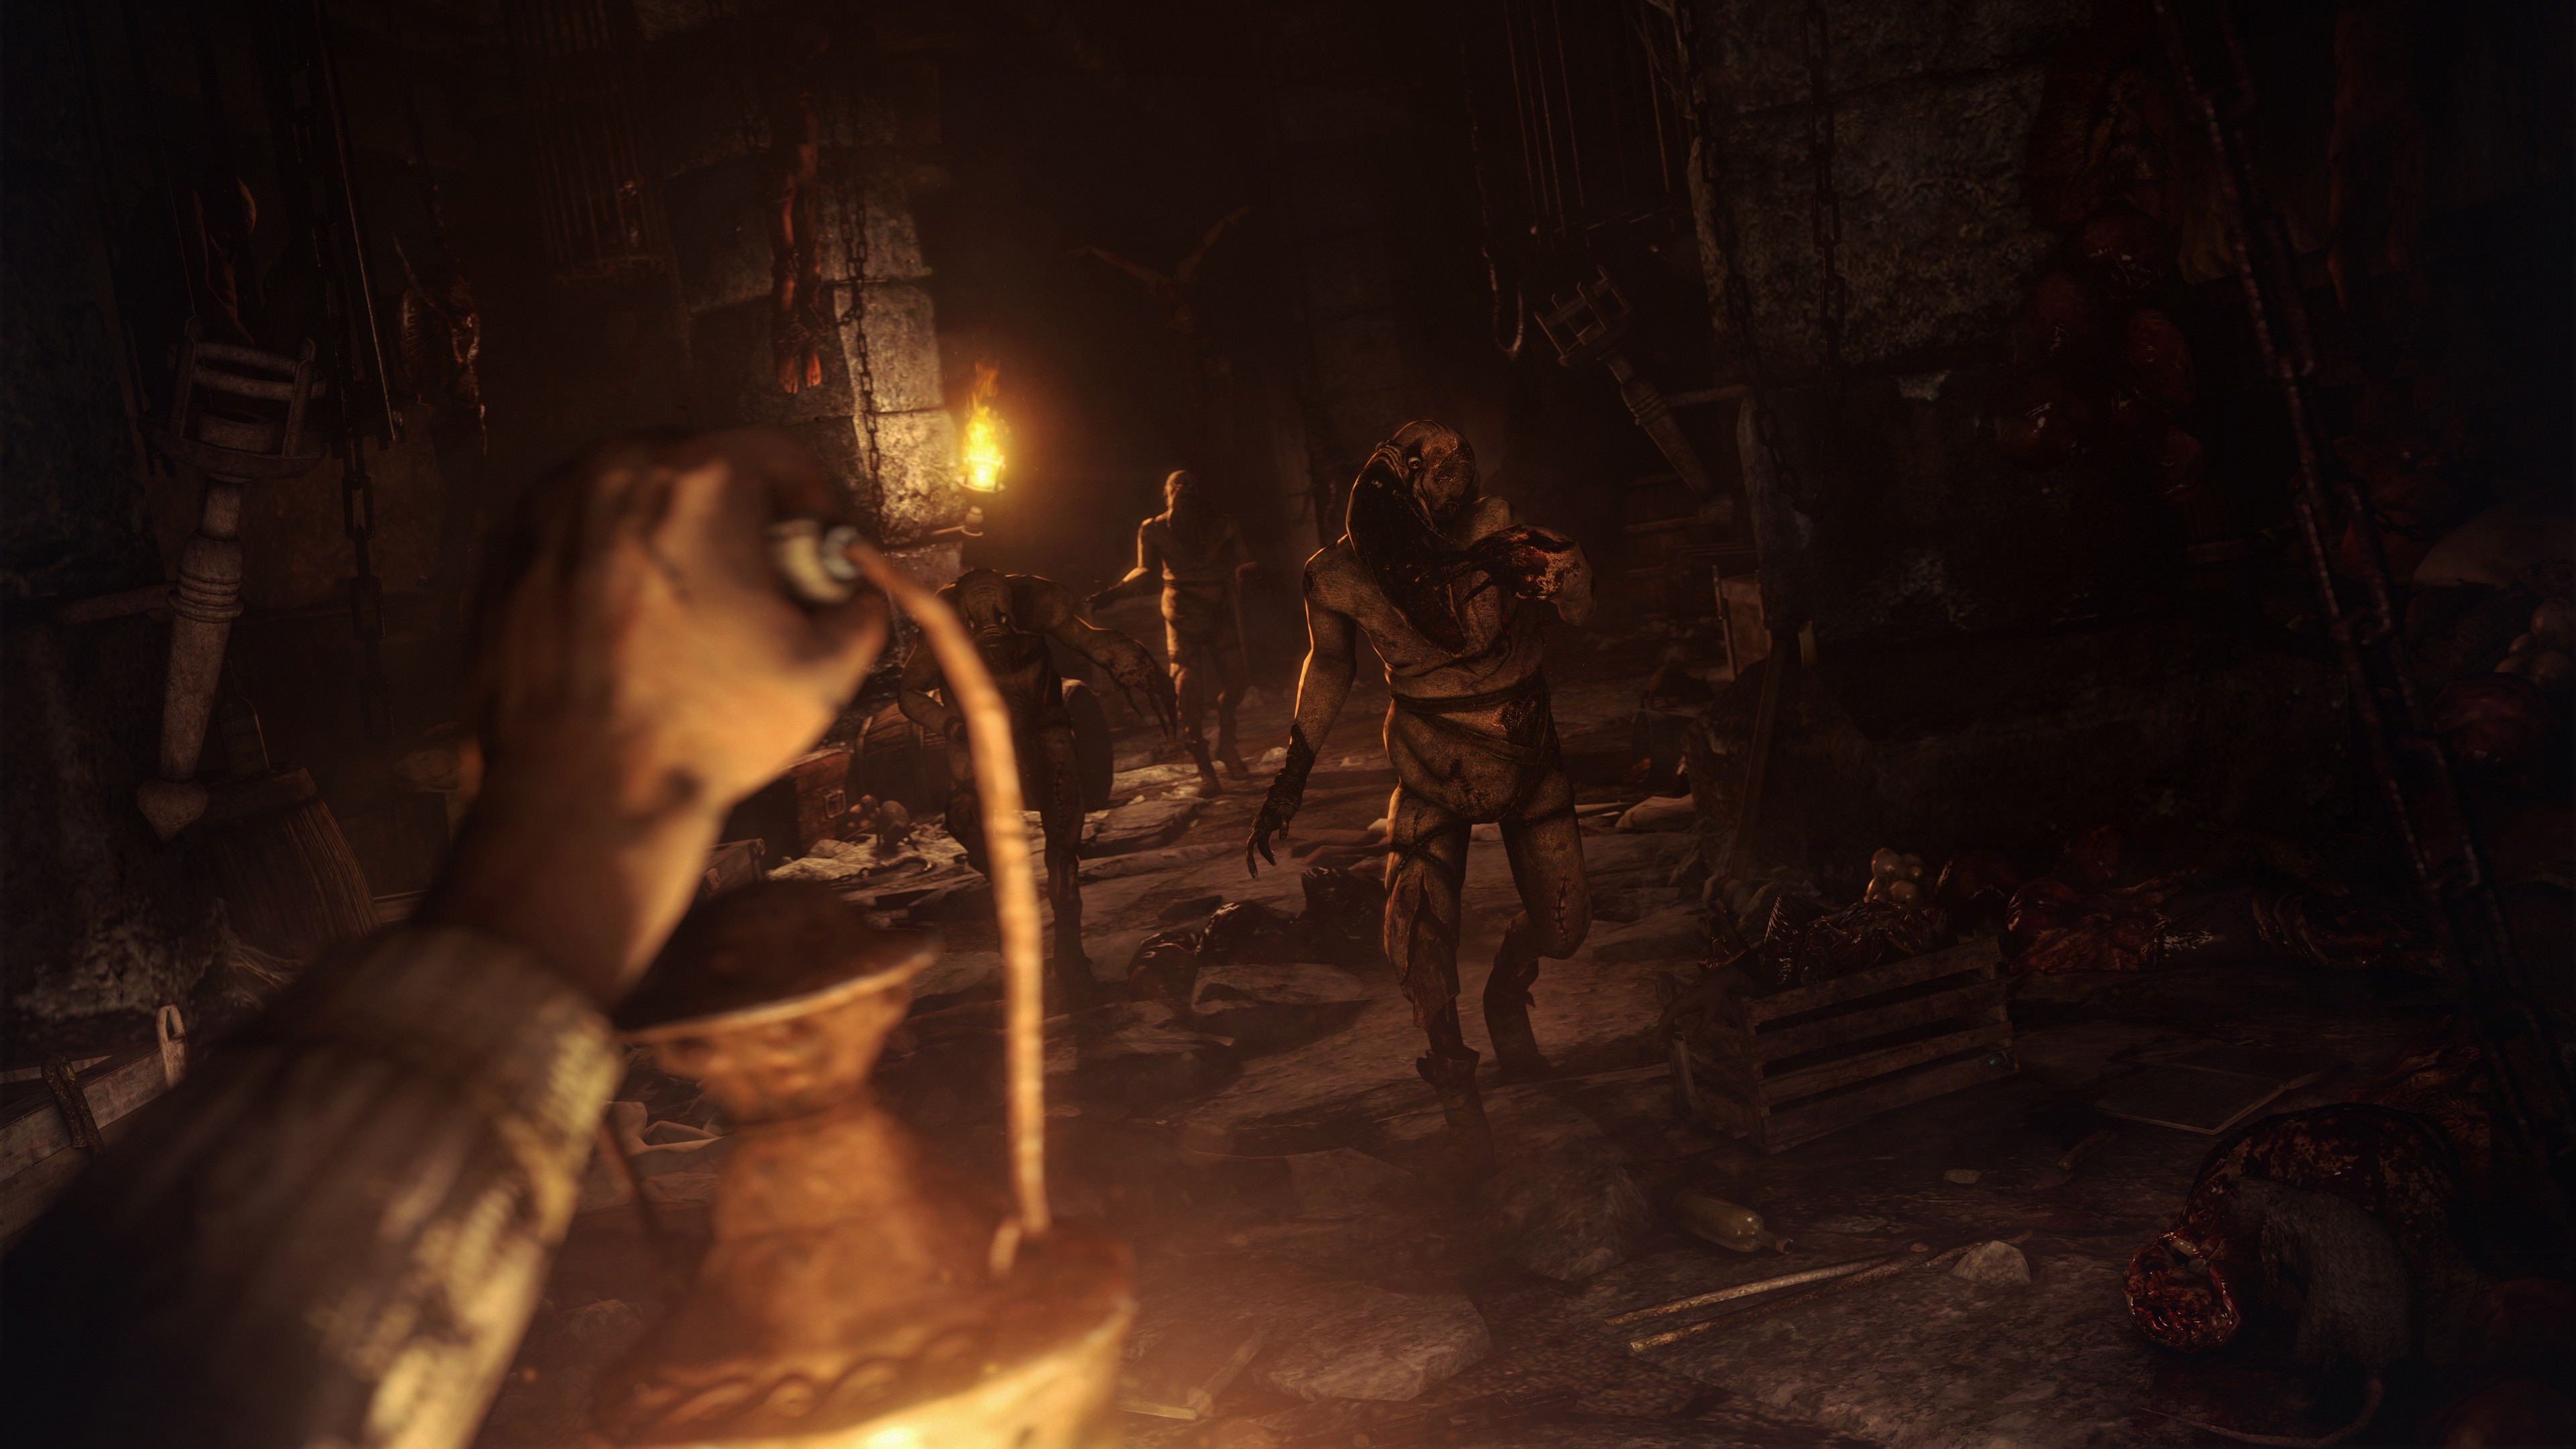 amnesia-the-dark-descent-scary-horror-zombies-games-2213.jpg